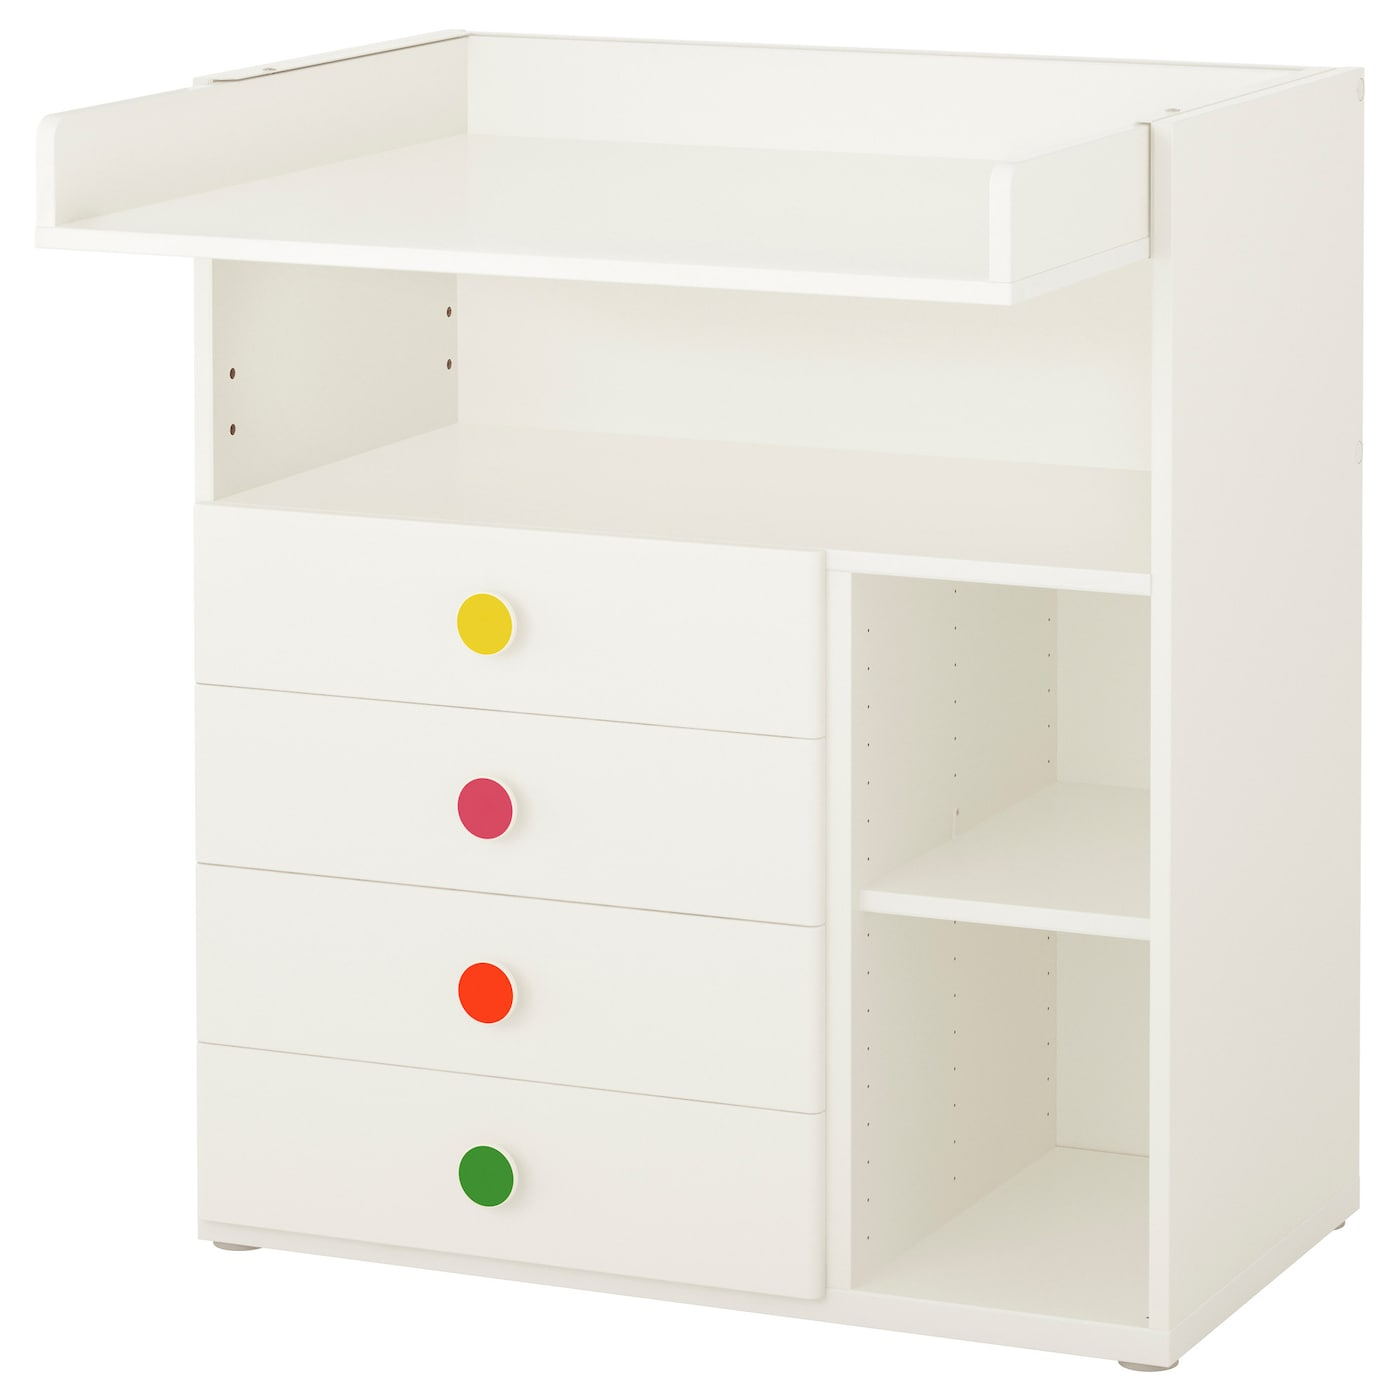 IKEA STUVA/FÖLJA changing table with 4 drawers